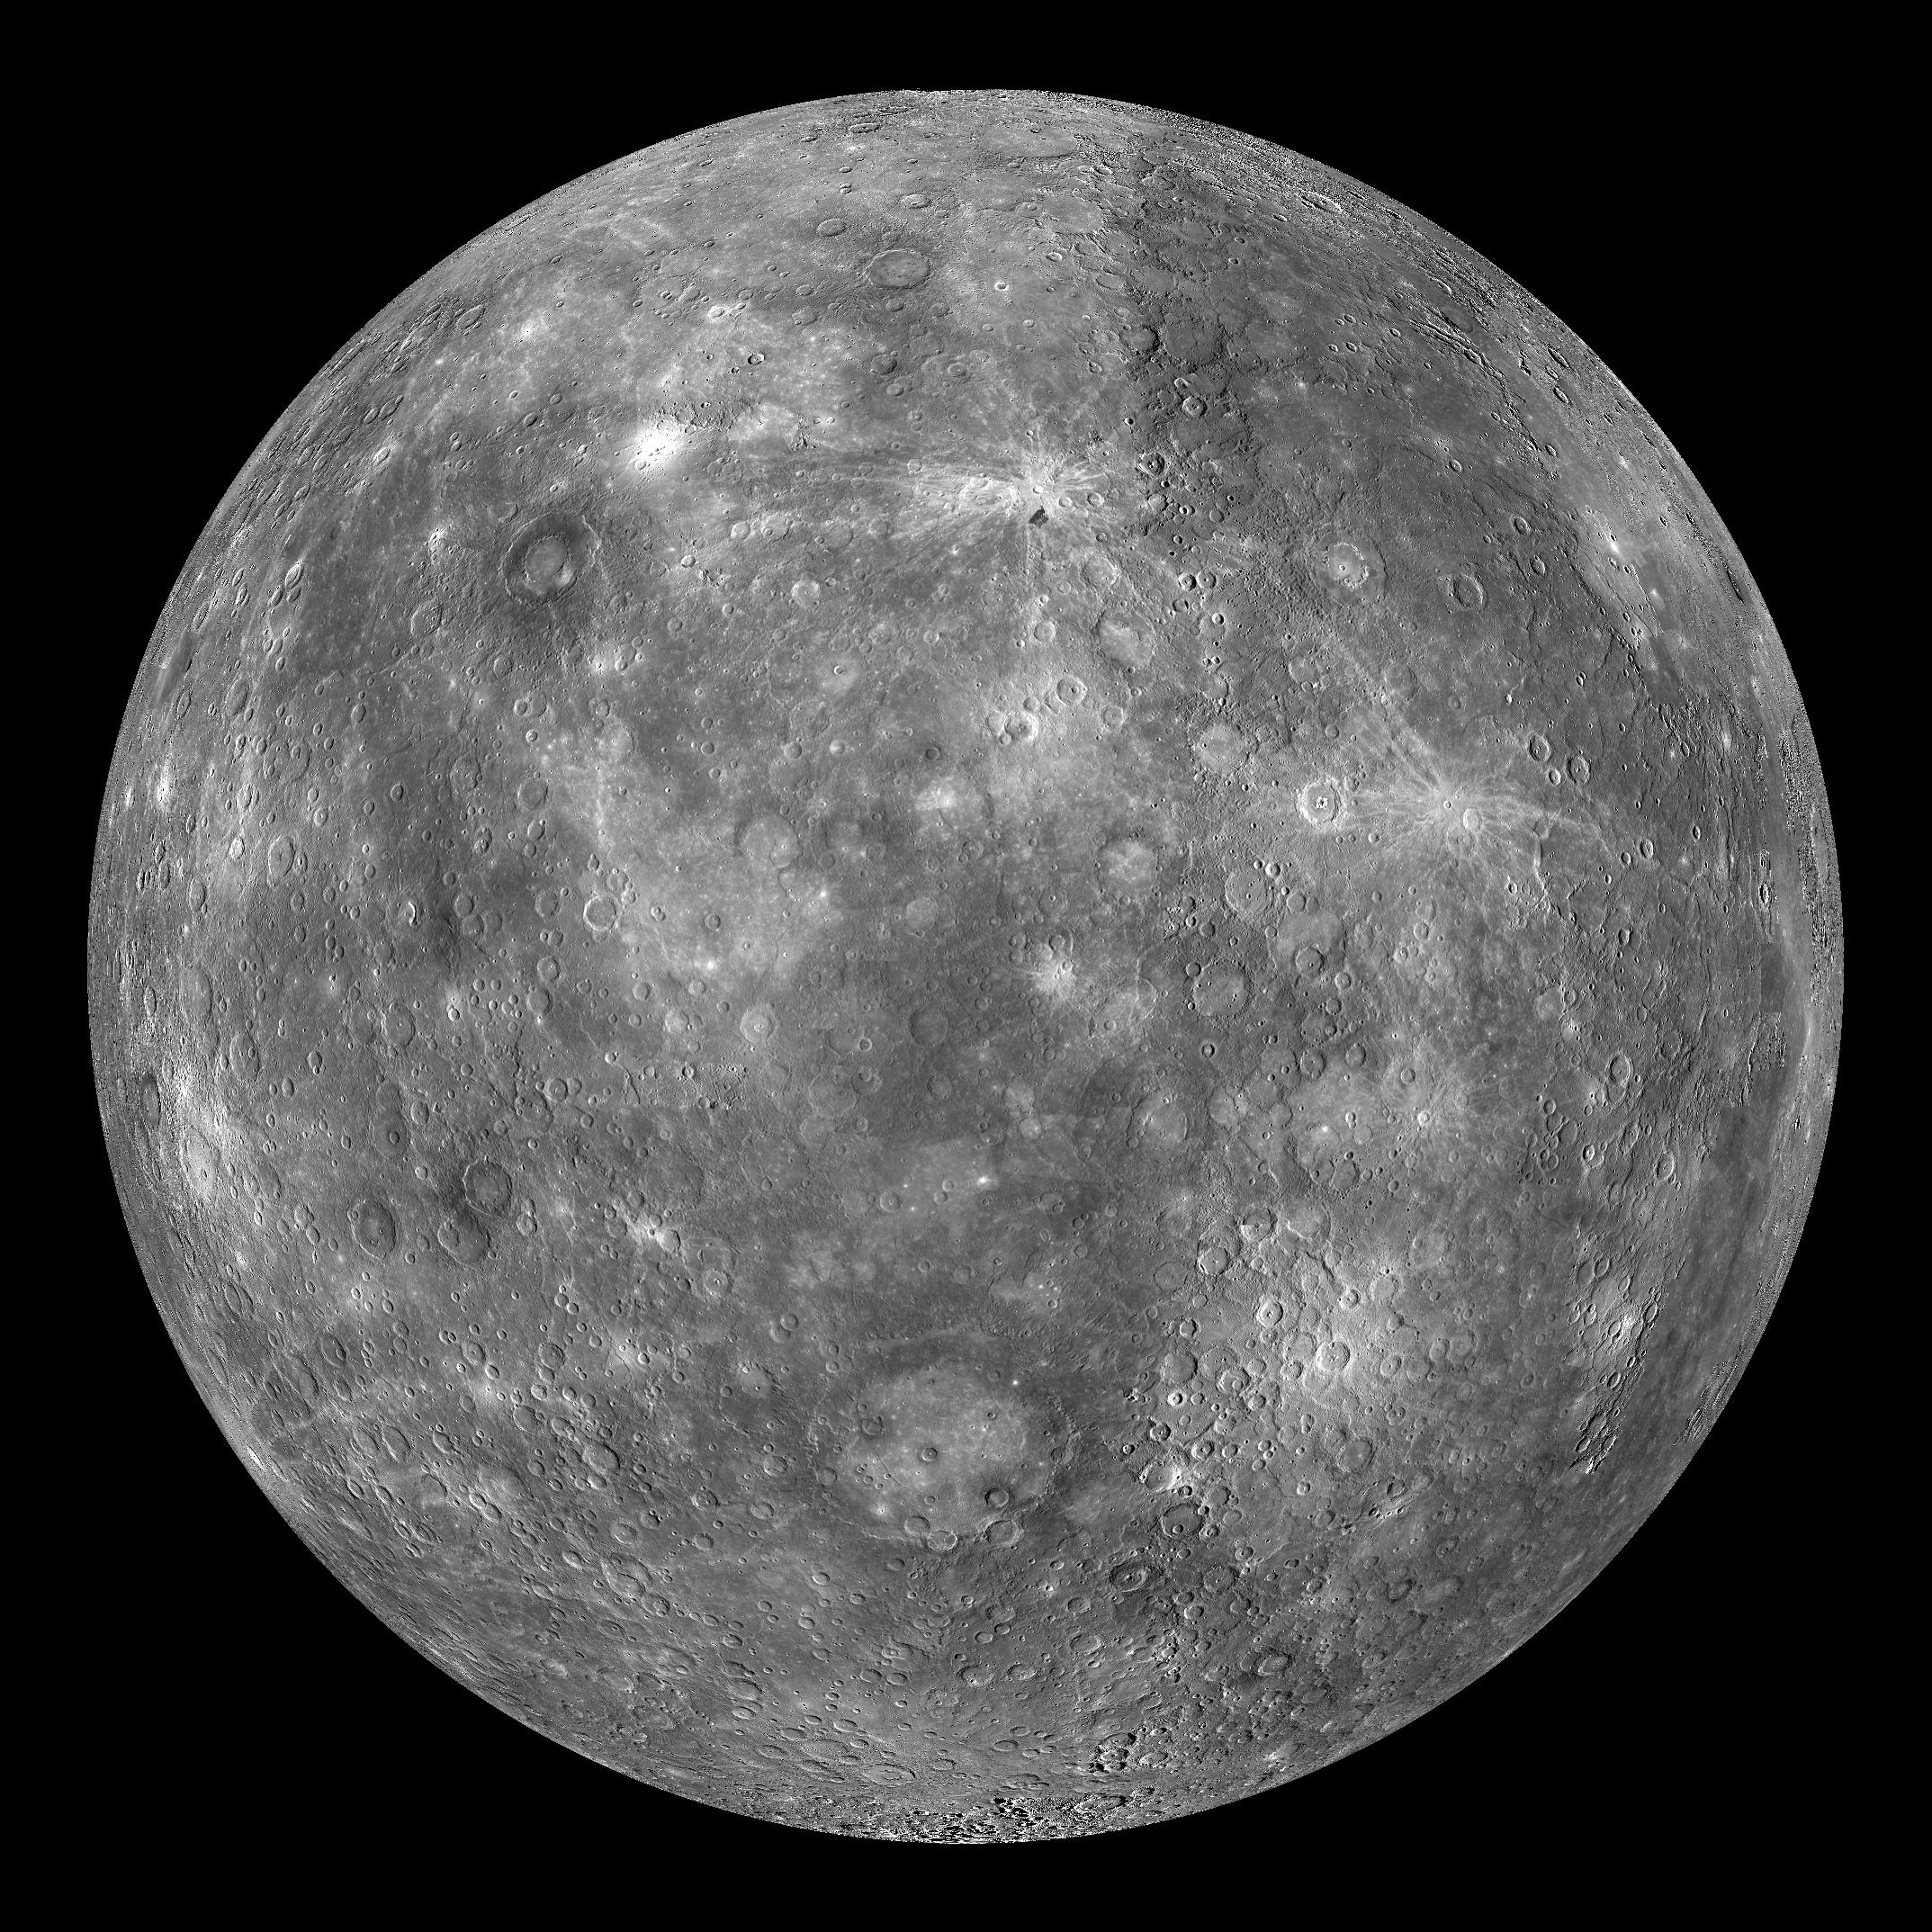 planet mercury Mercury is the innermost and smallest planet in the solar system, orbiting the sun once every 88 days its brightness ranges from about -20 to 55 in apparent.